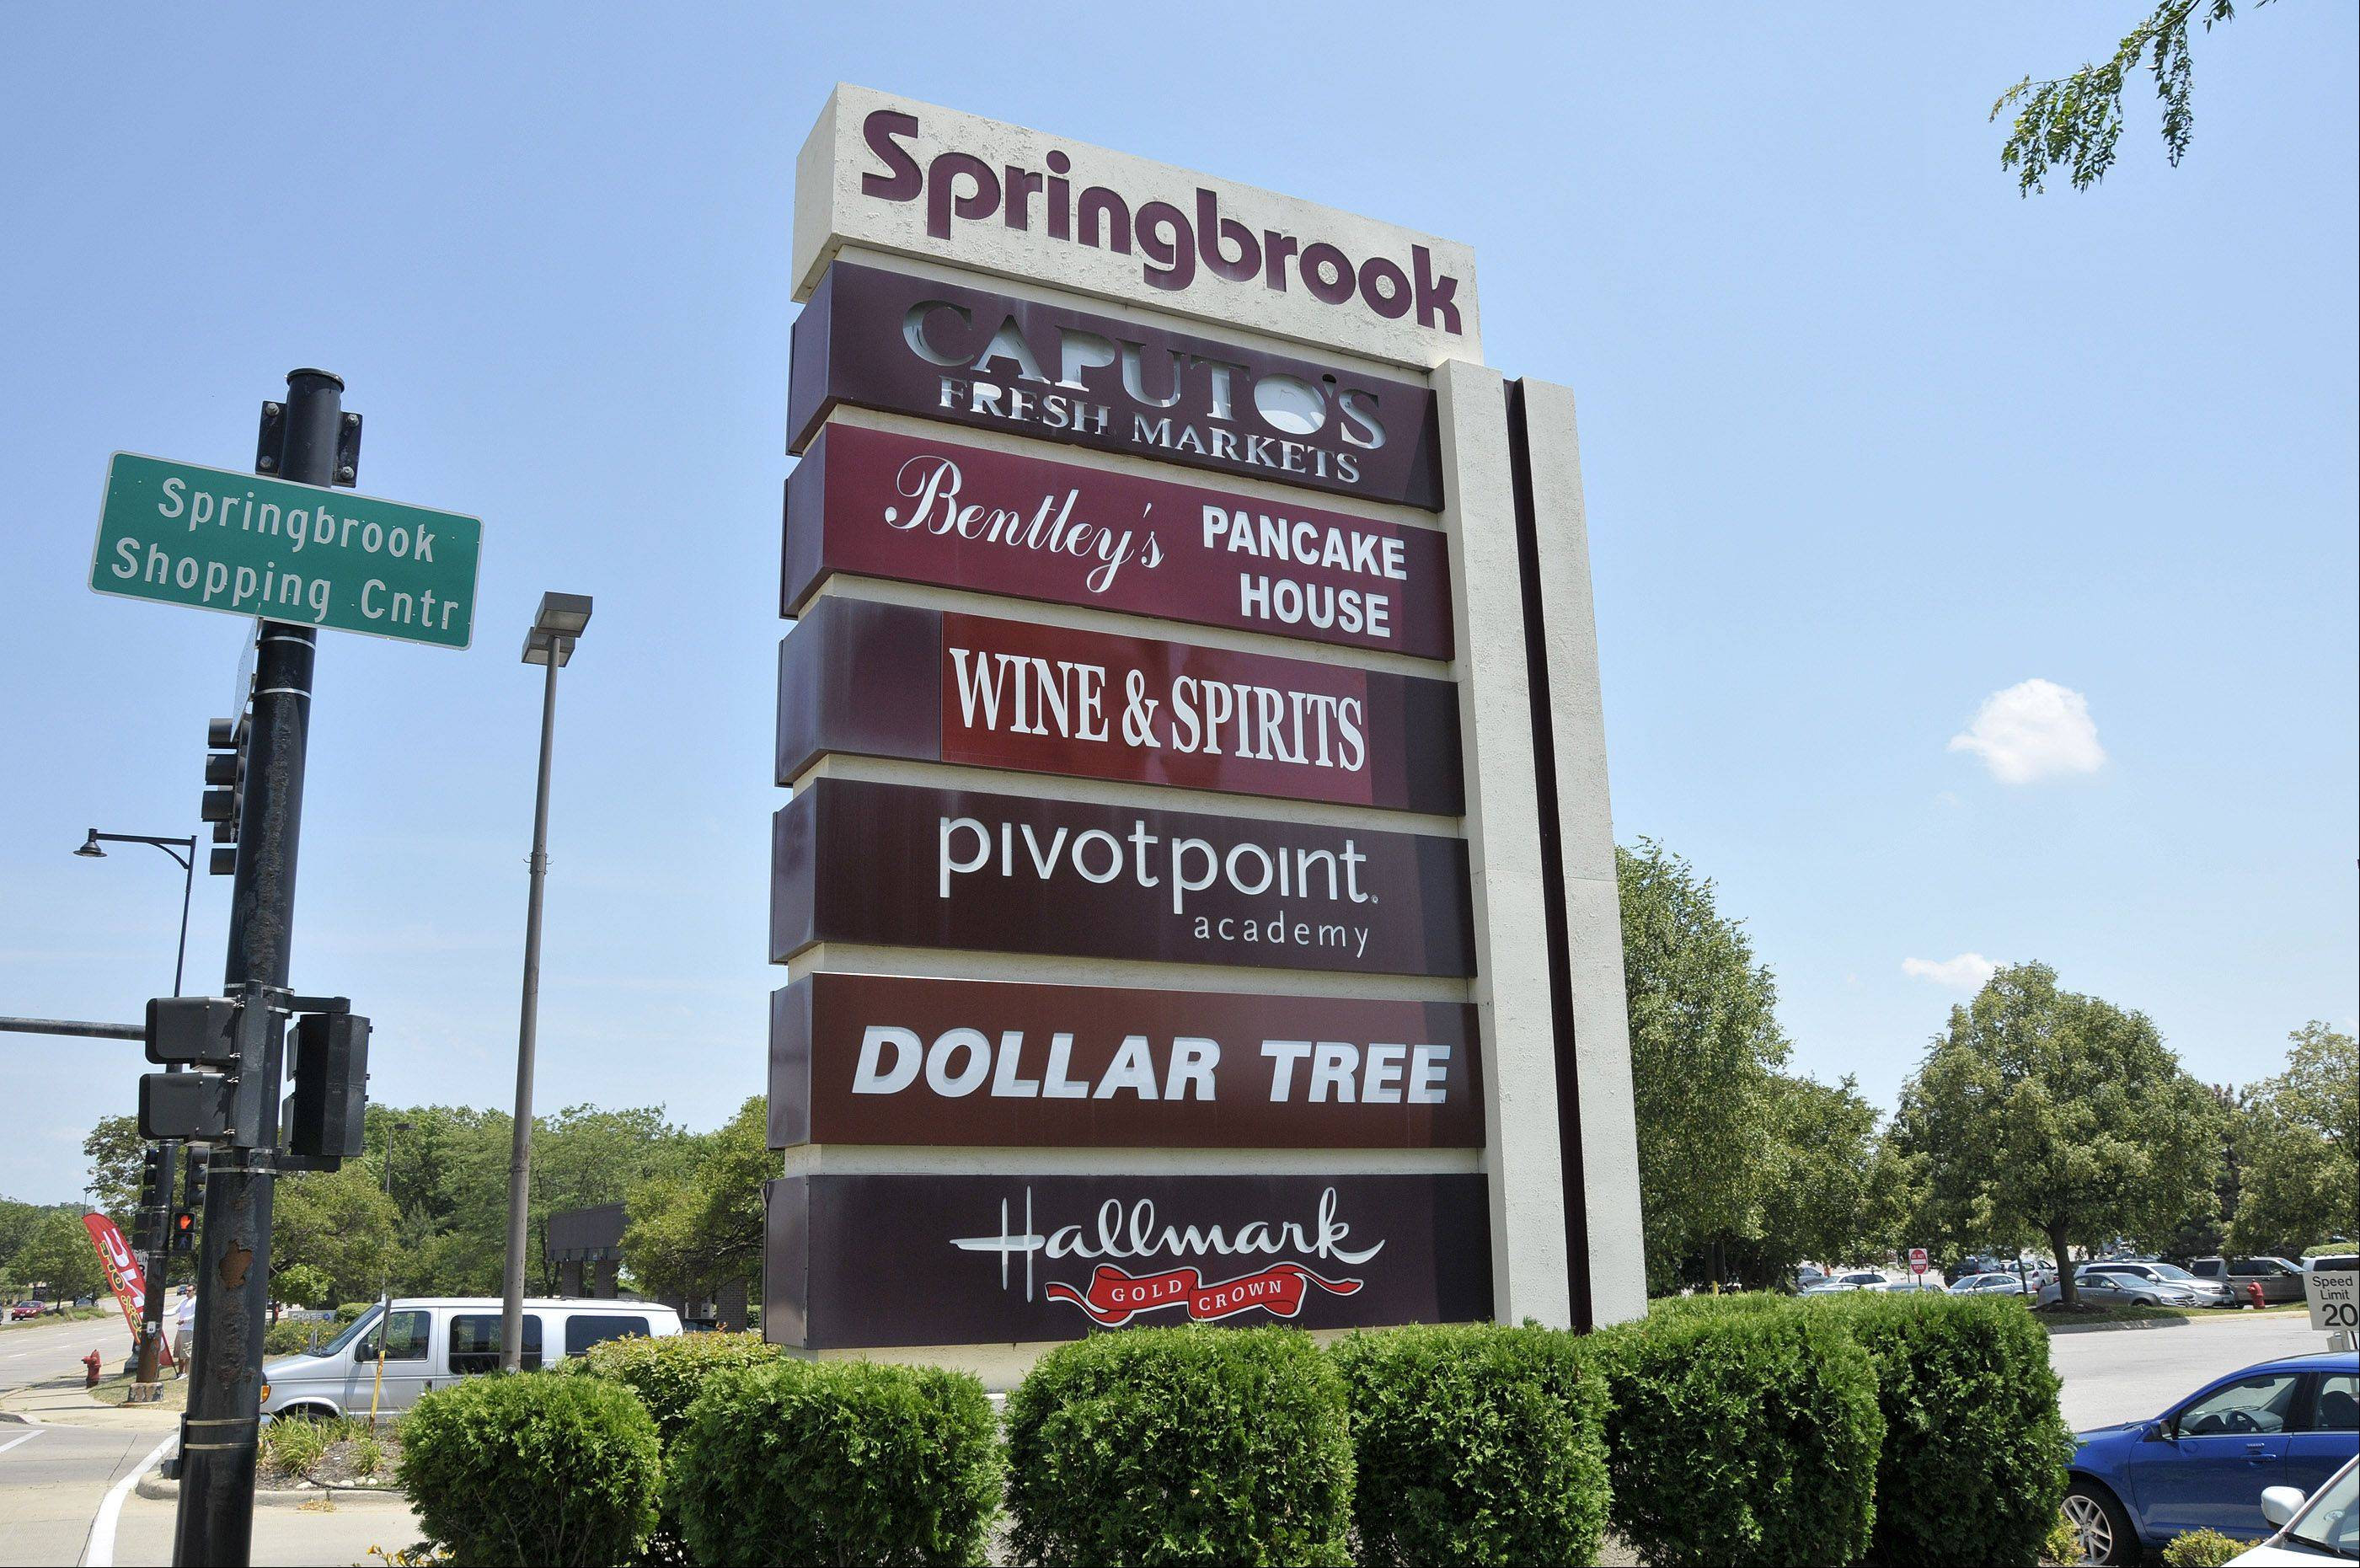 Bloomingdale trustees will hear a proposal June 25 on improvements for Springbrook Shopping Center, which is a tax increment financing district. But with key vacancies and other concerns, some are skeptical about offering more village help.